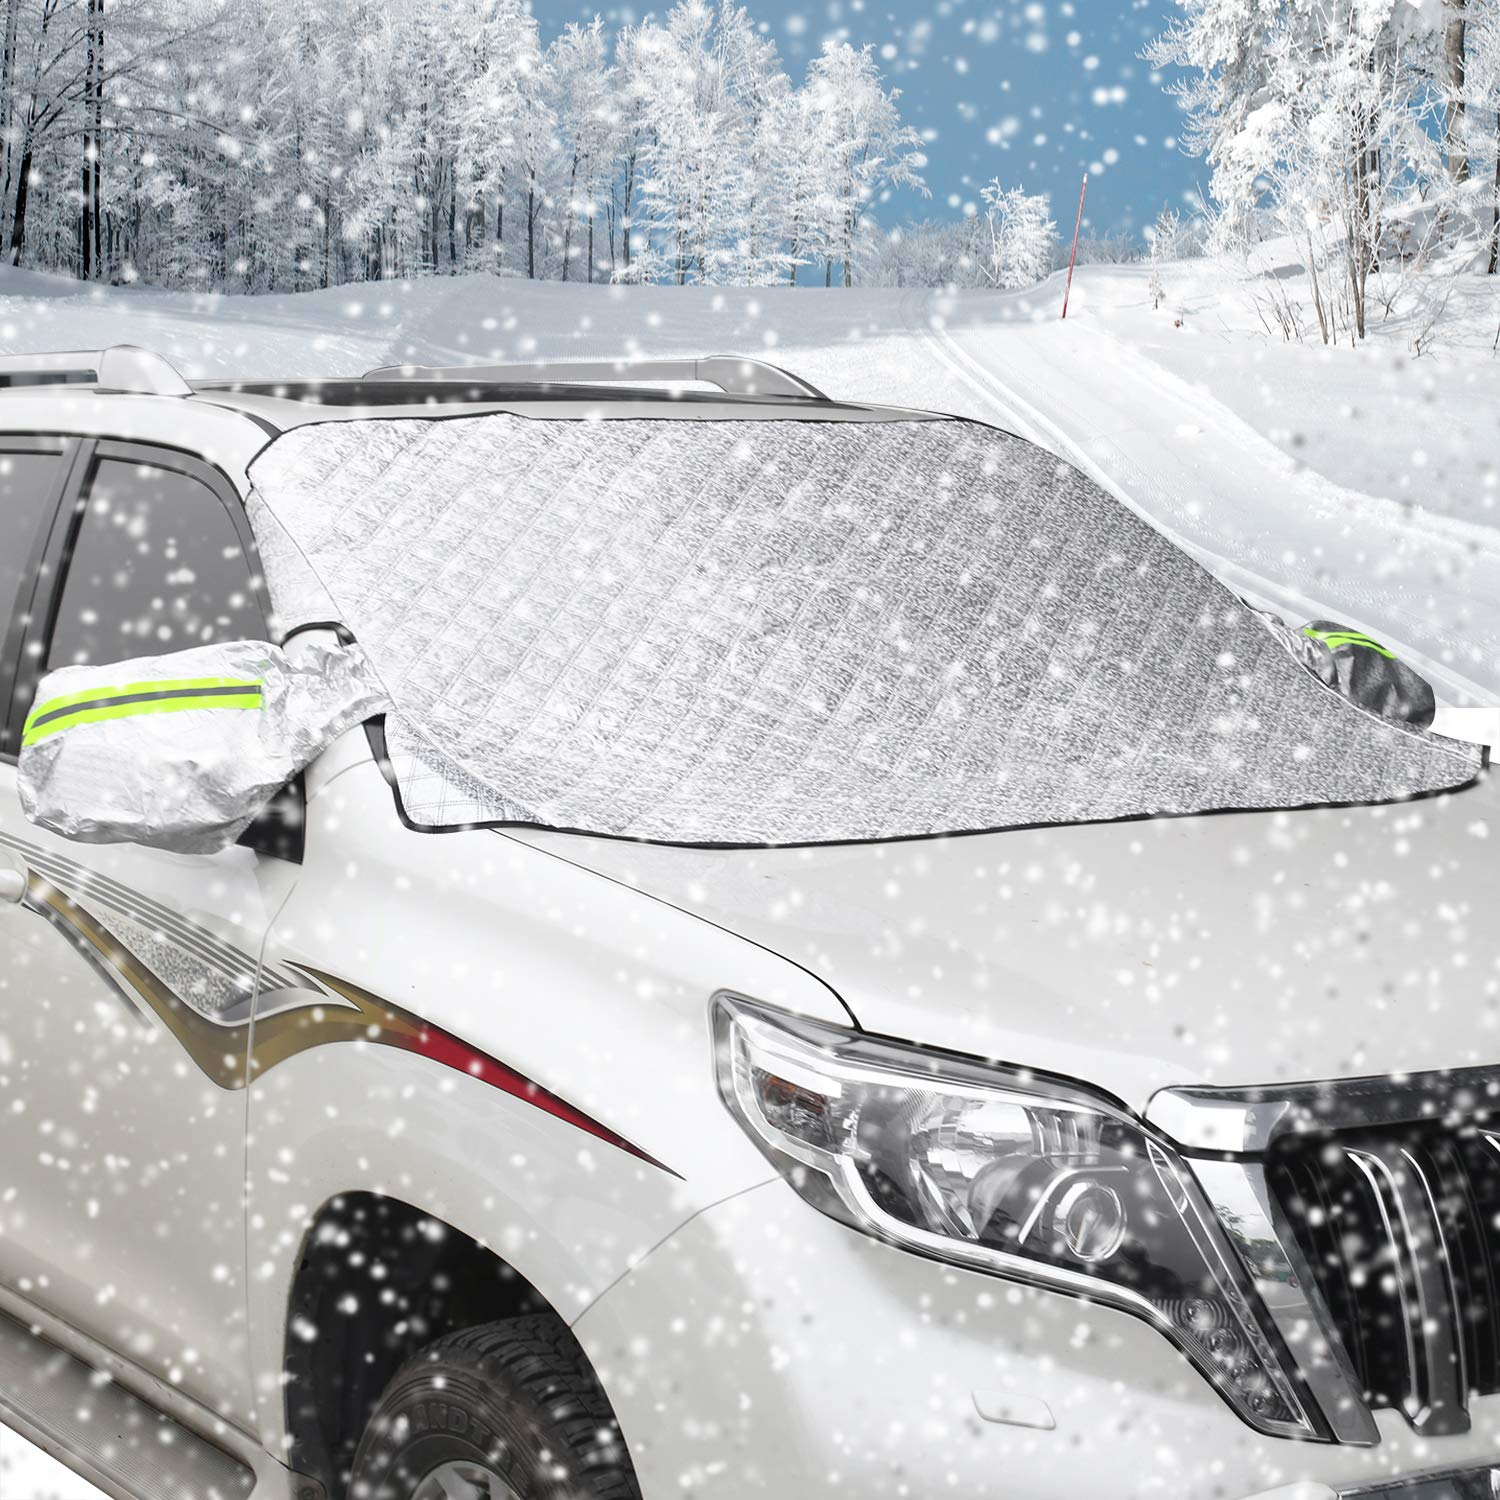 Large Sun Shade Protector with Rearview Mirror Protector and Anti-Theft Edges AUTSCA Car Windshield Snow Cover for SUV